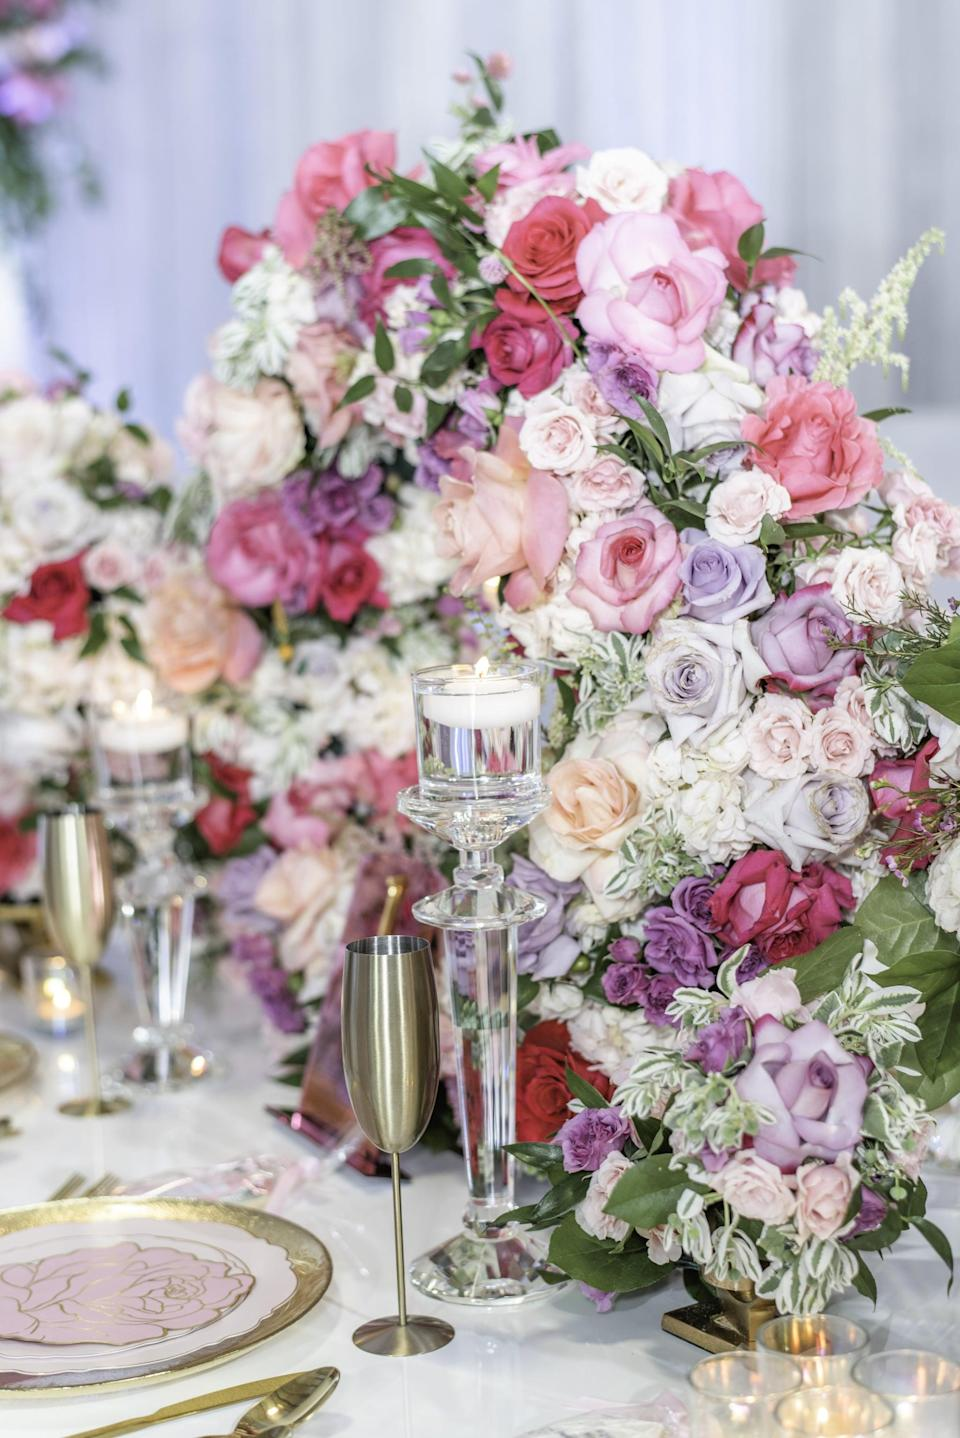 <p>Shower your bride with a flower-filled day when you incorporate her favorite florals into her celebration. This theme is perfect if your bride is all about great photo ops because flowers make for the best backdrop. We suggest having a chic tea time or afternoon picnic as the main event for this kind of party theme.</p>